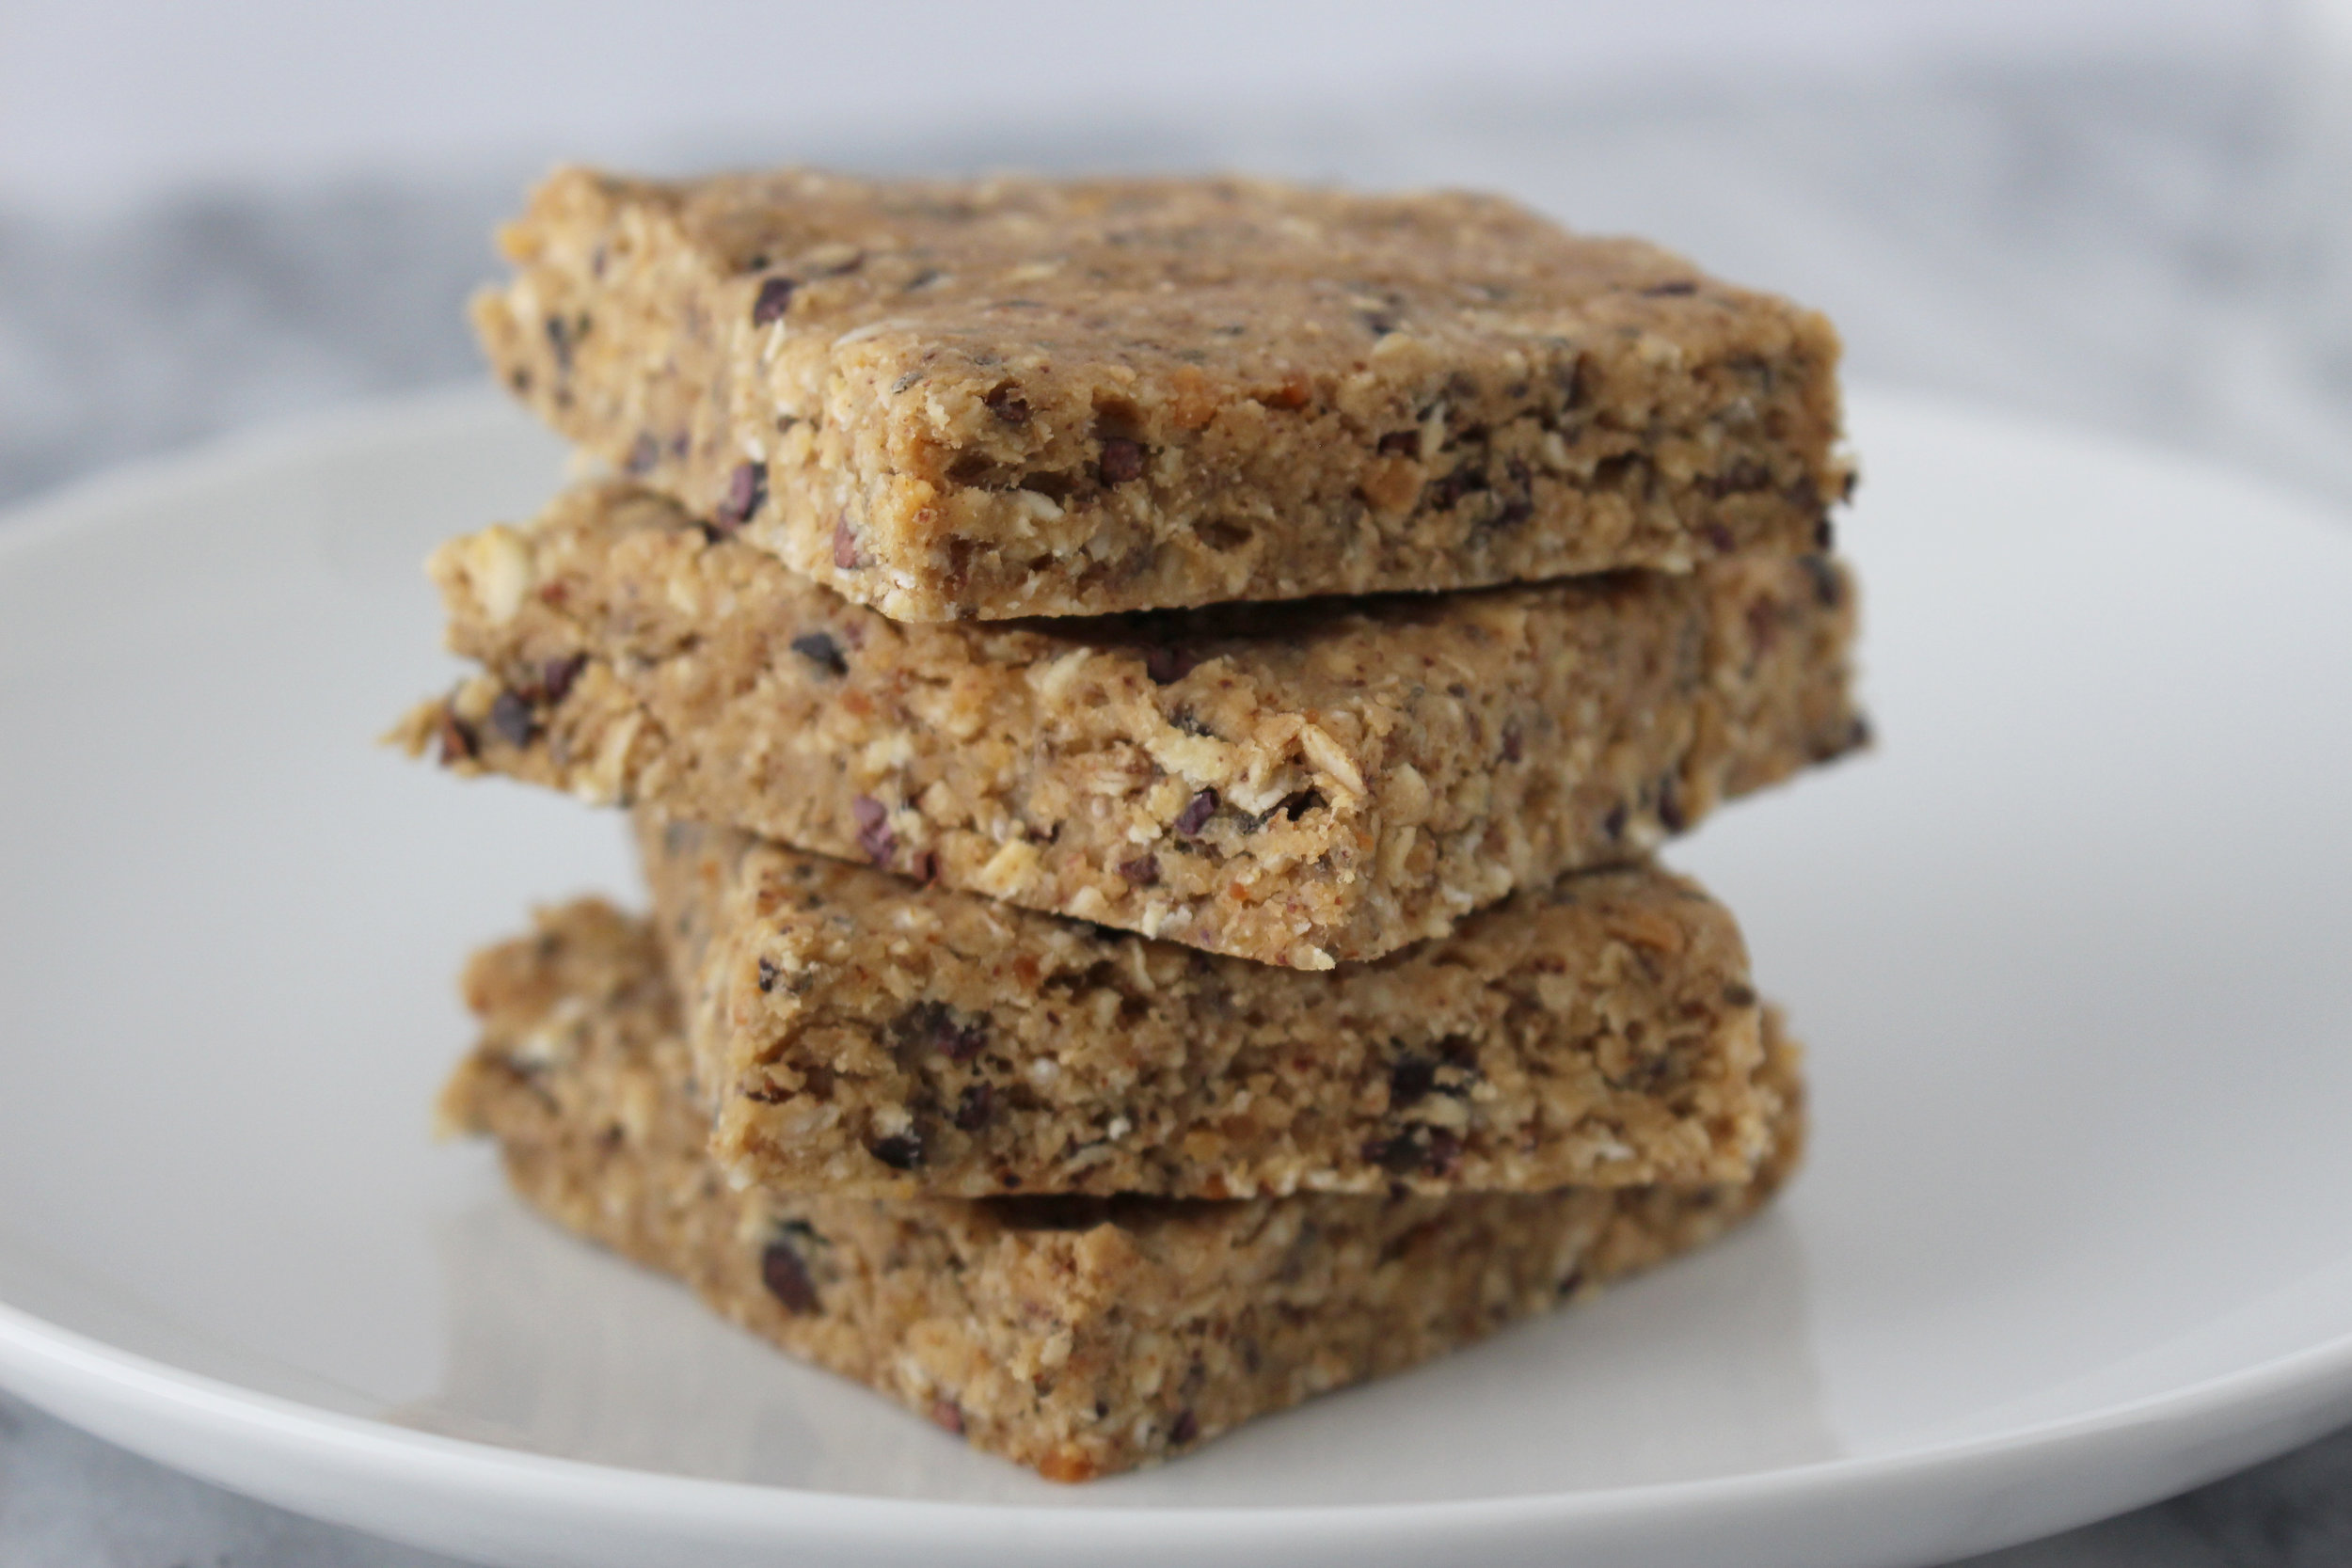 vegan-protein-bar2.jpg